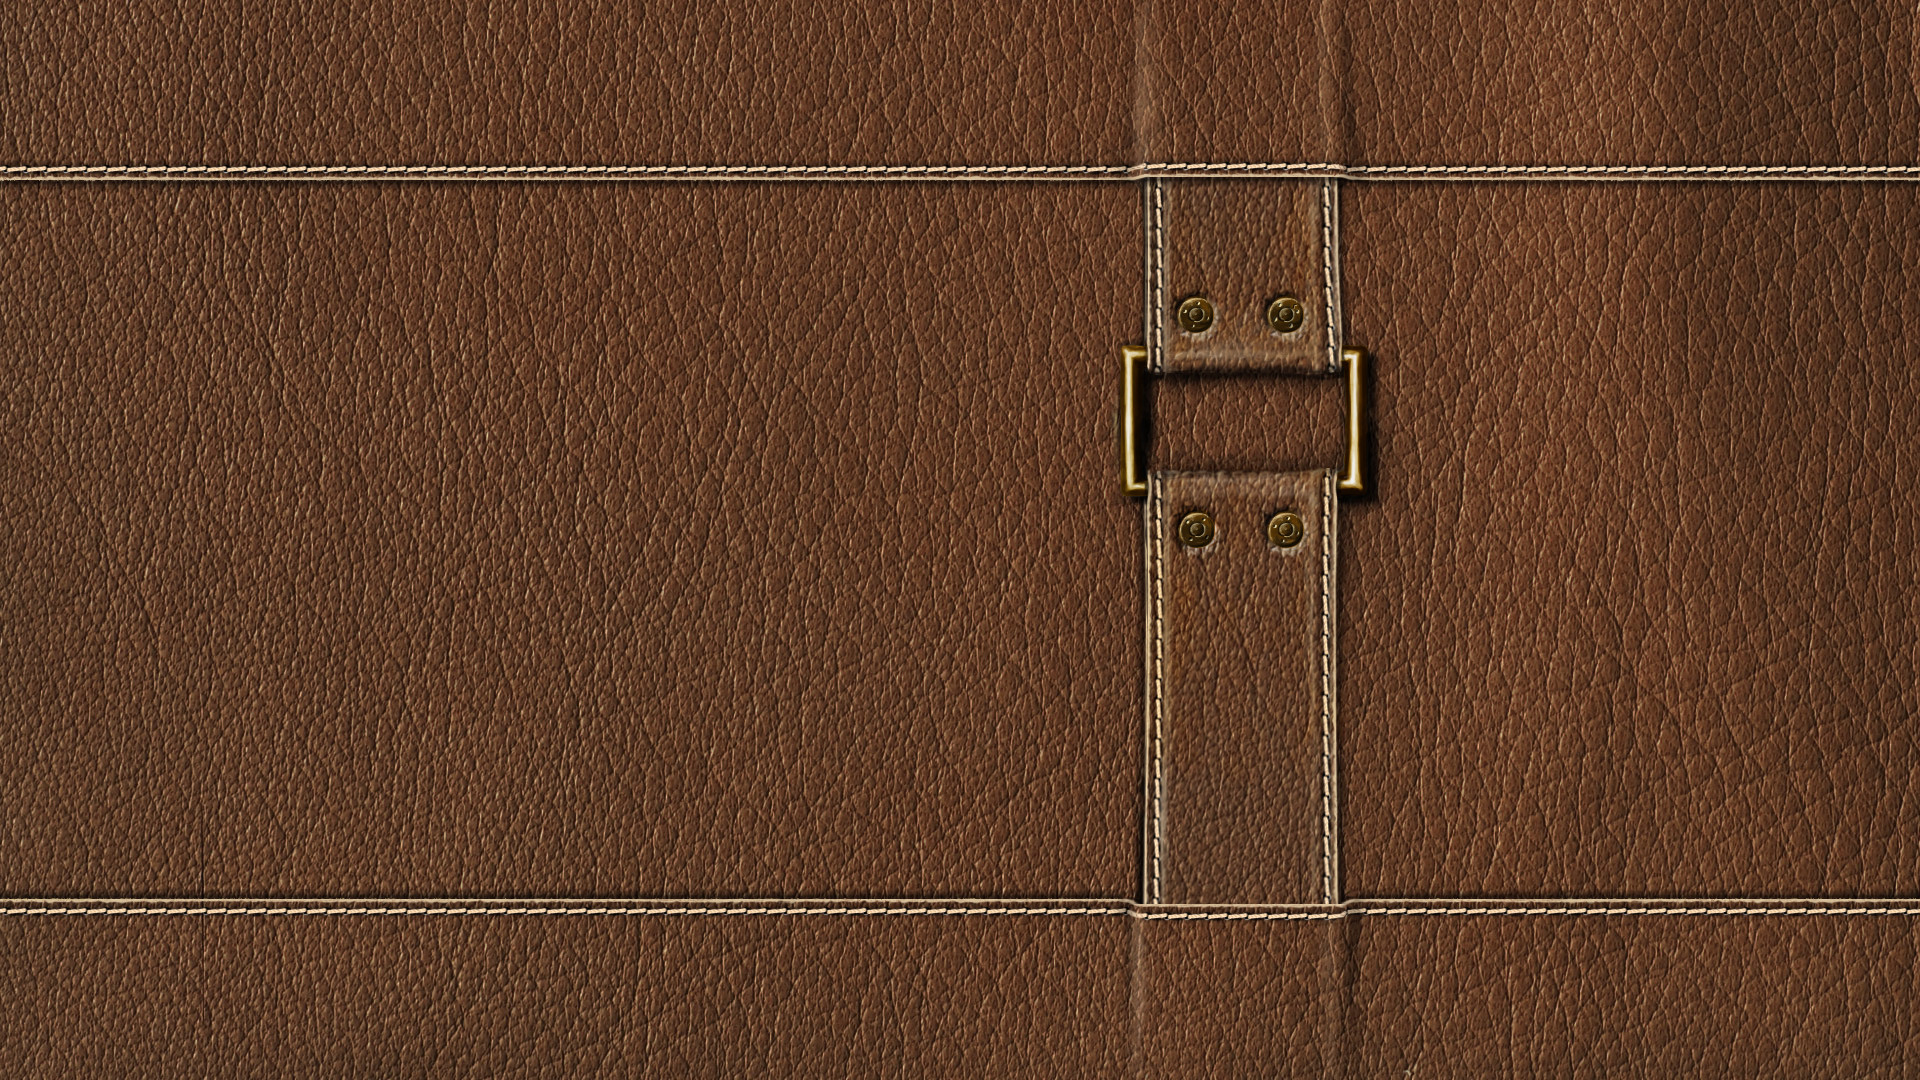 1920x1080 ... painted Wallpaper - Leather (Leder) by dasflon